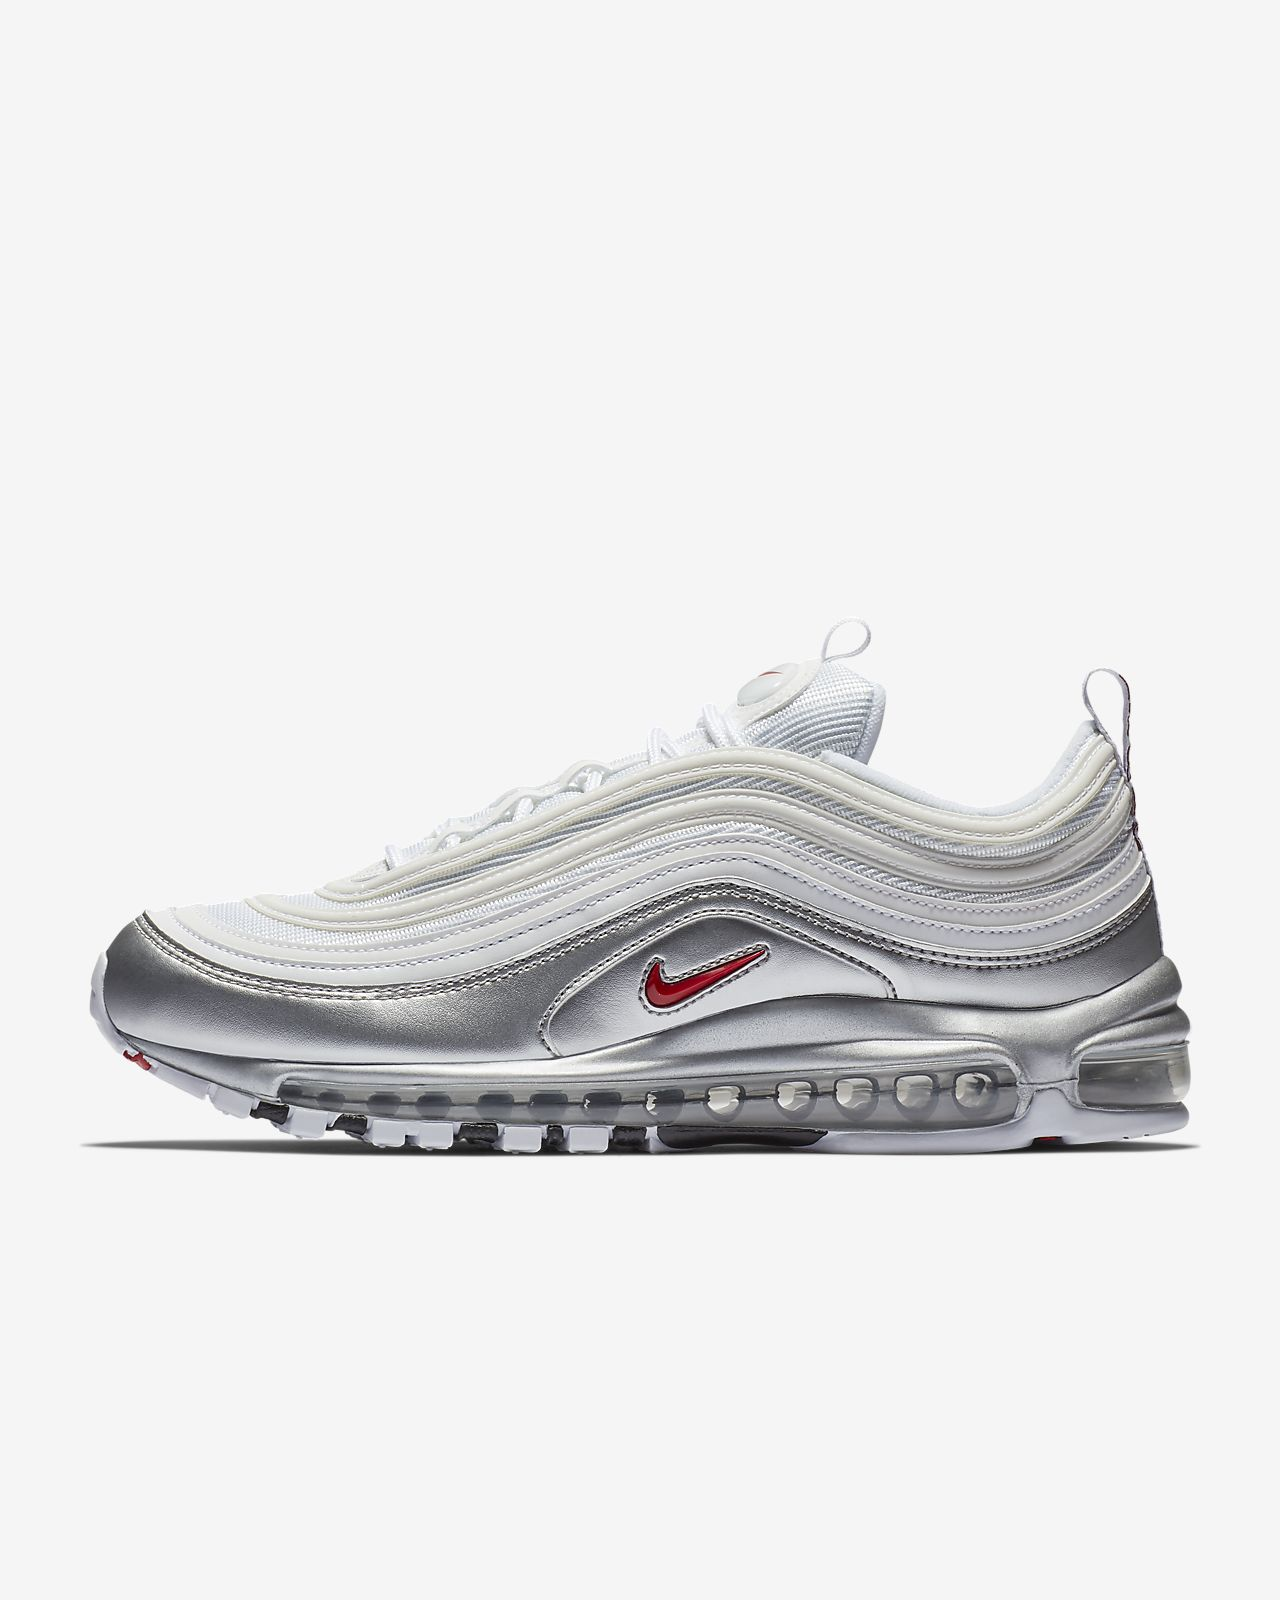 9fead9d19edc64 Nike Air Max 97 QS Men s Shoe. Nike.com